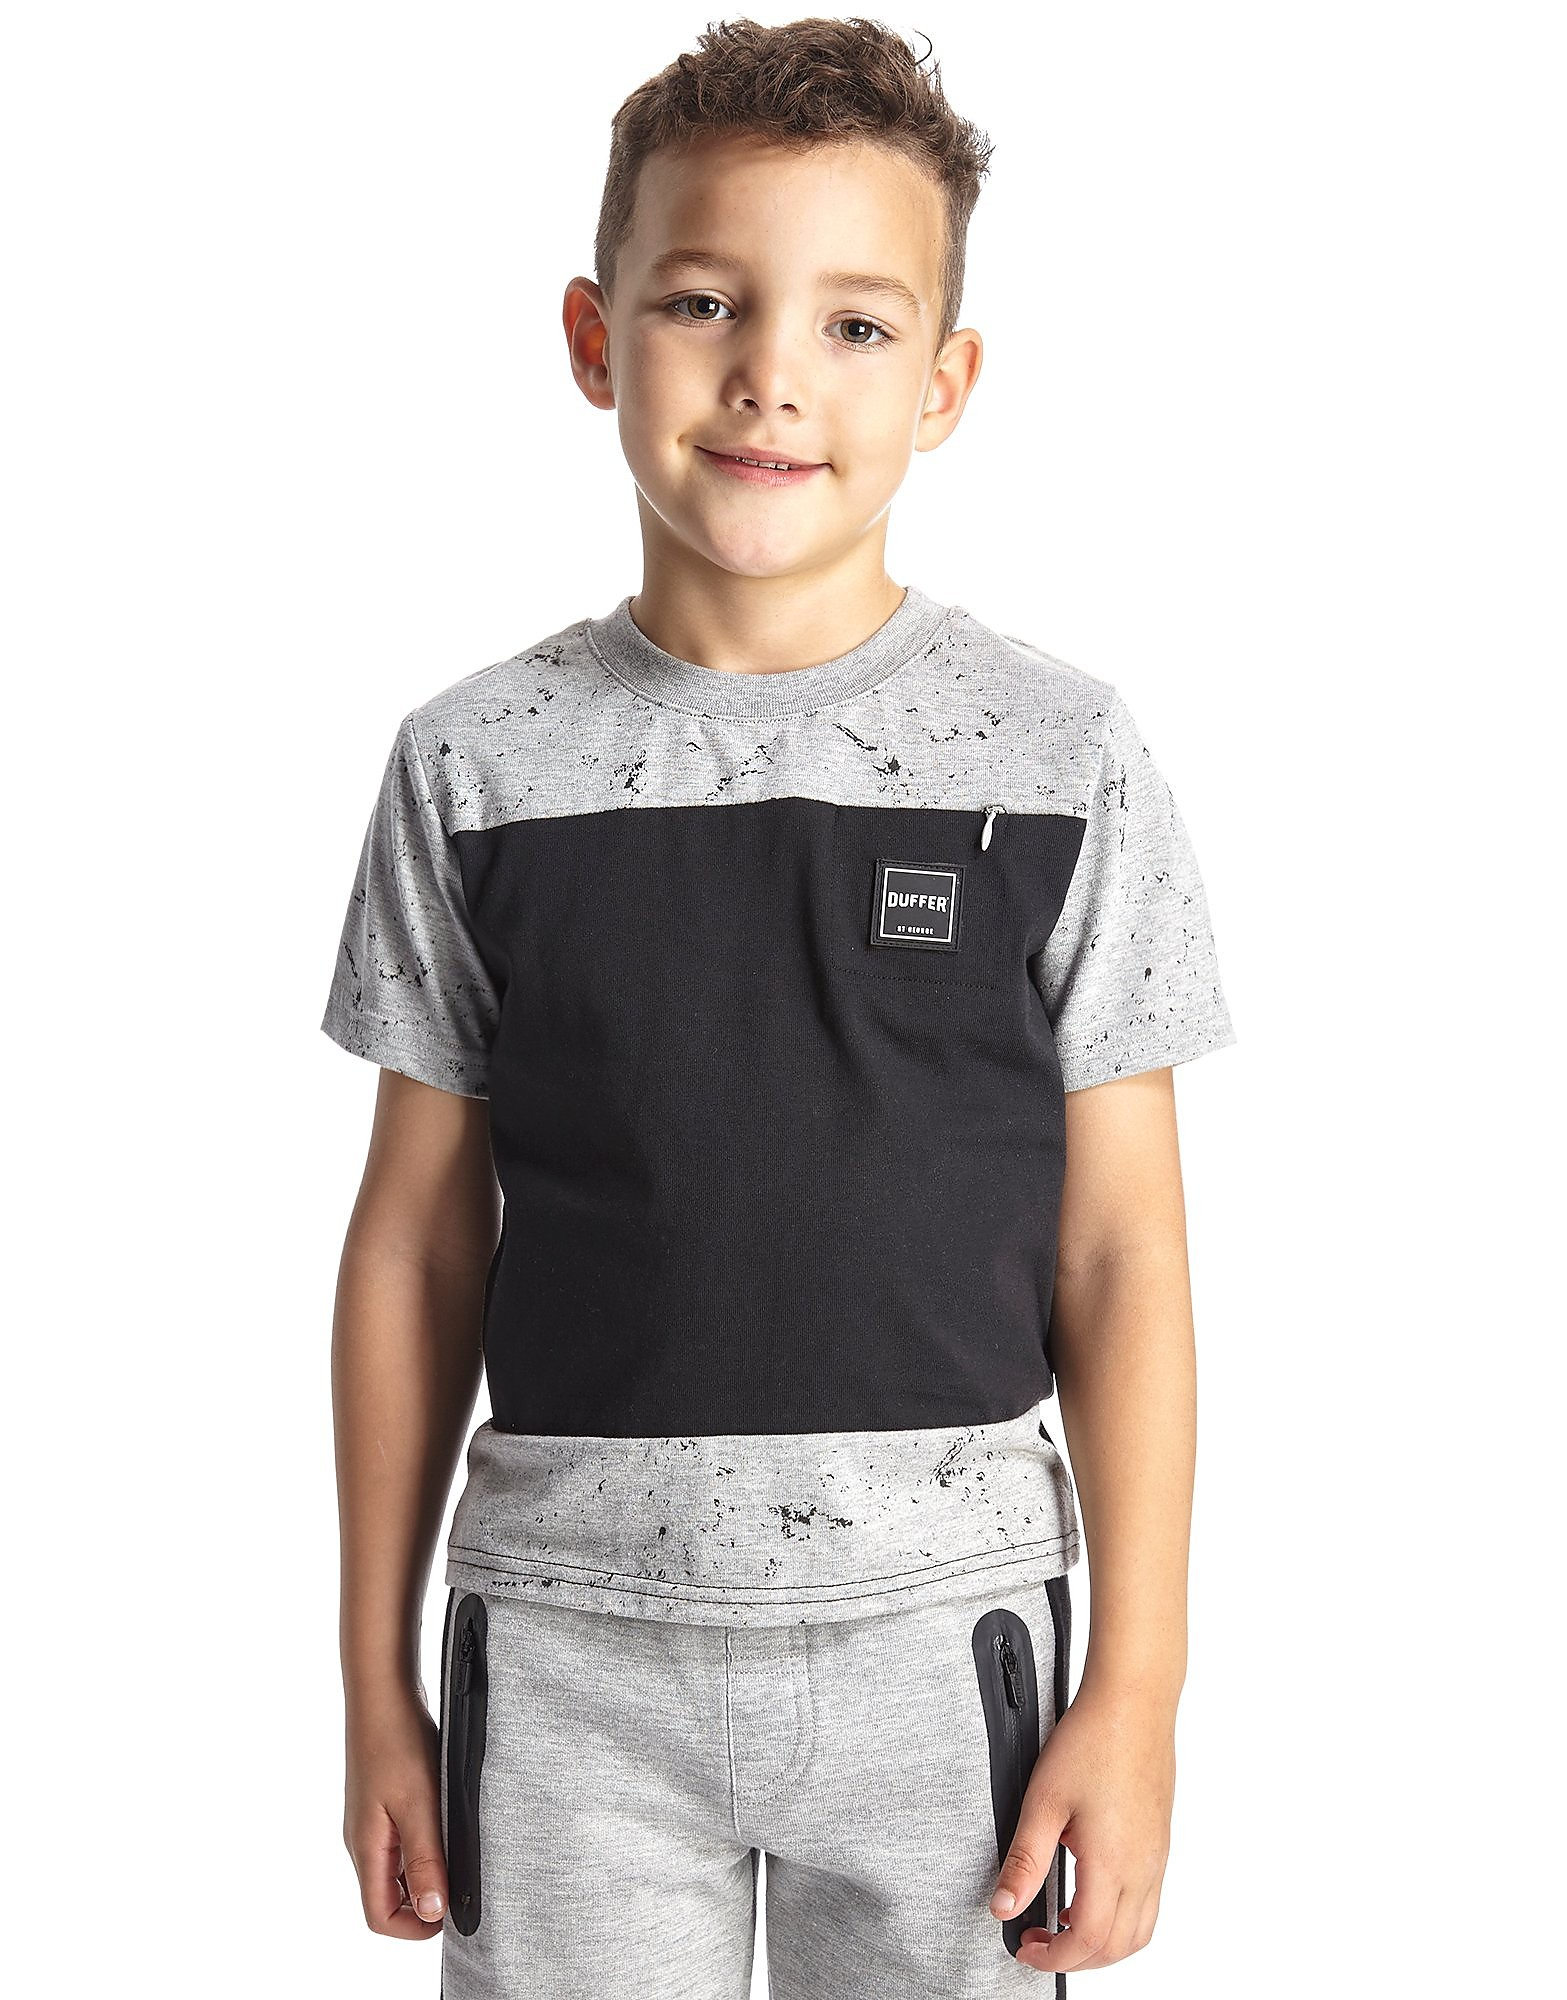 Duffer of St George Bank T-Shirt Children